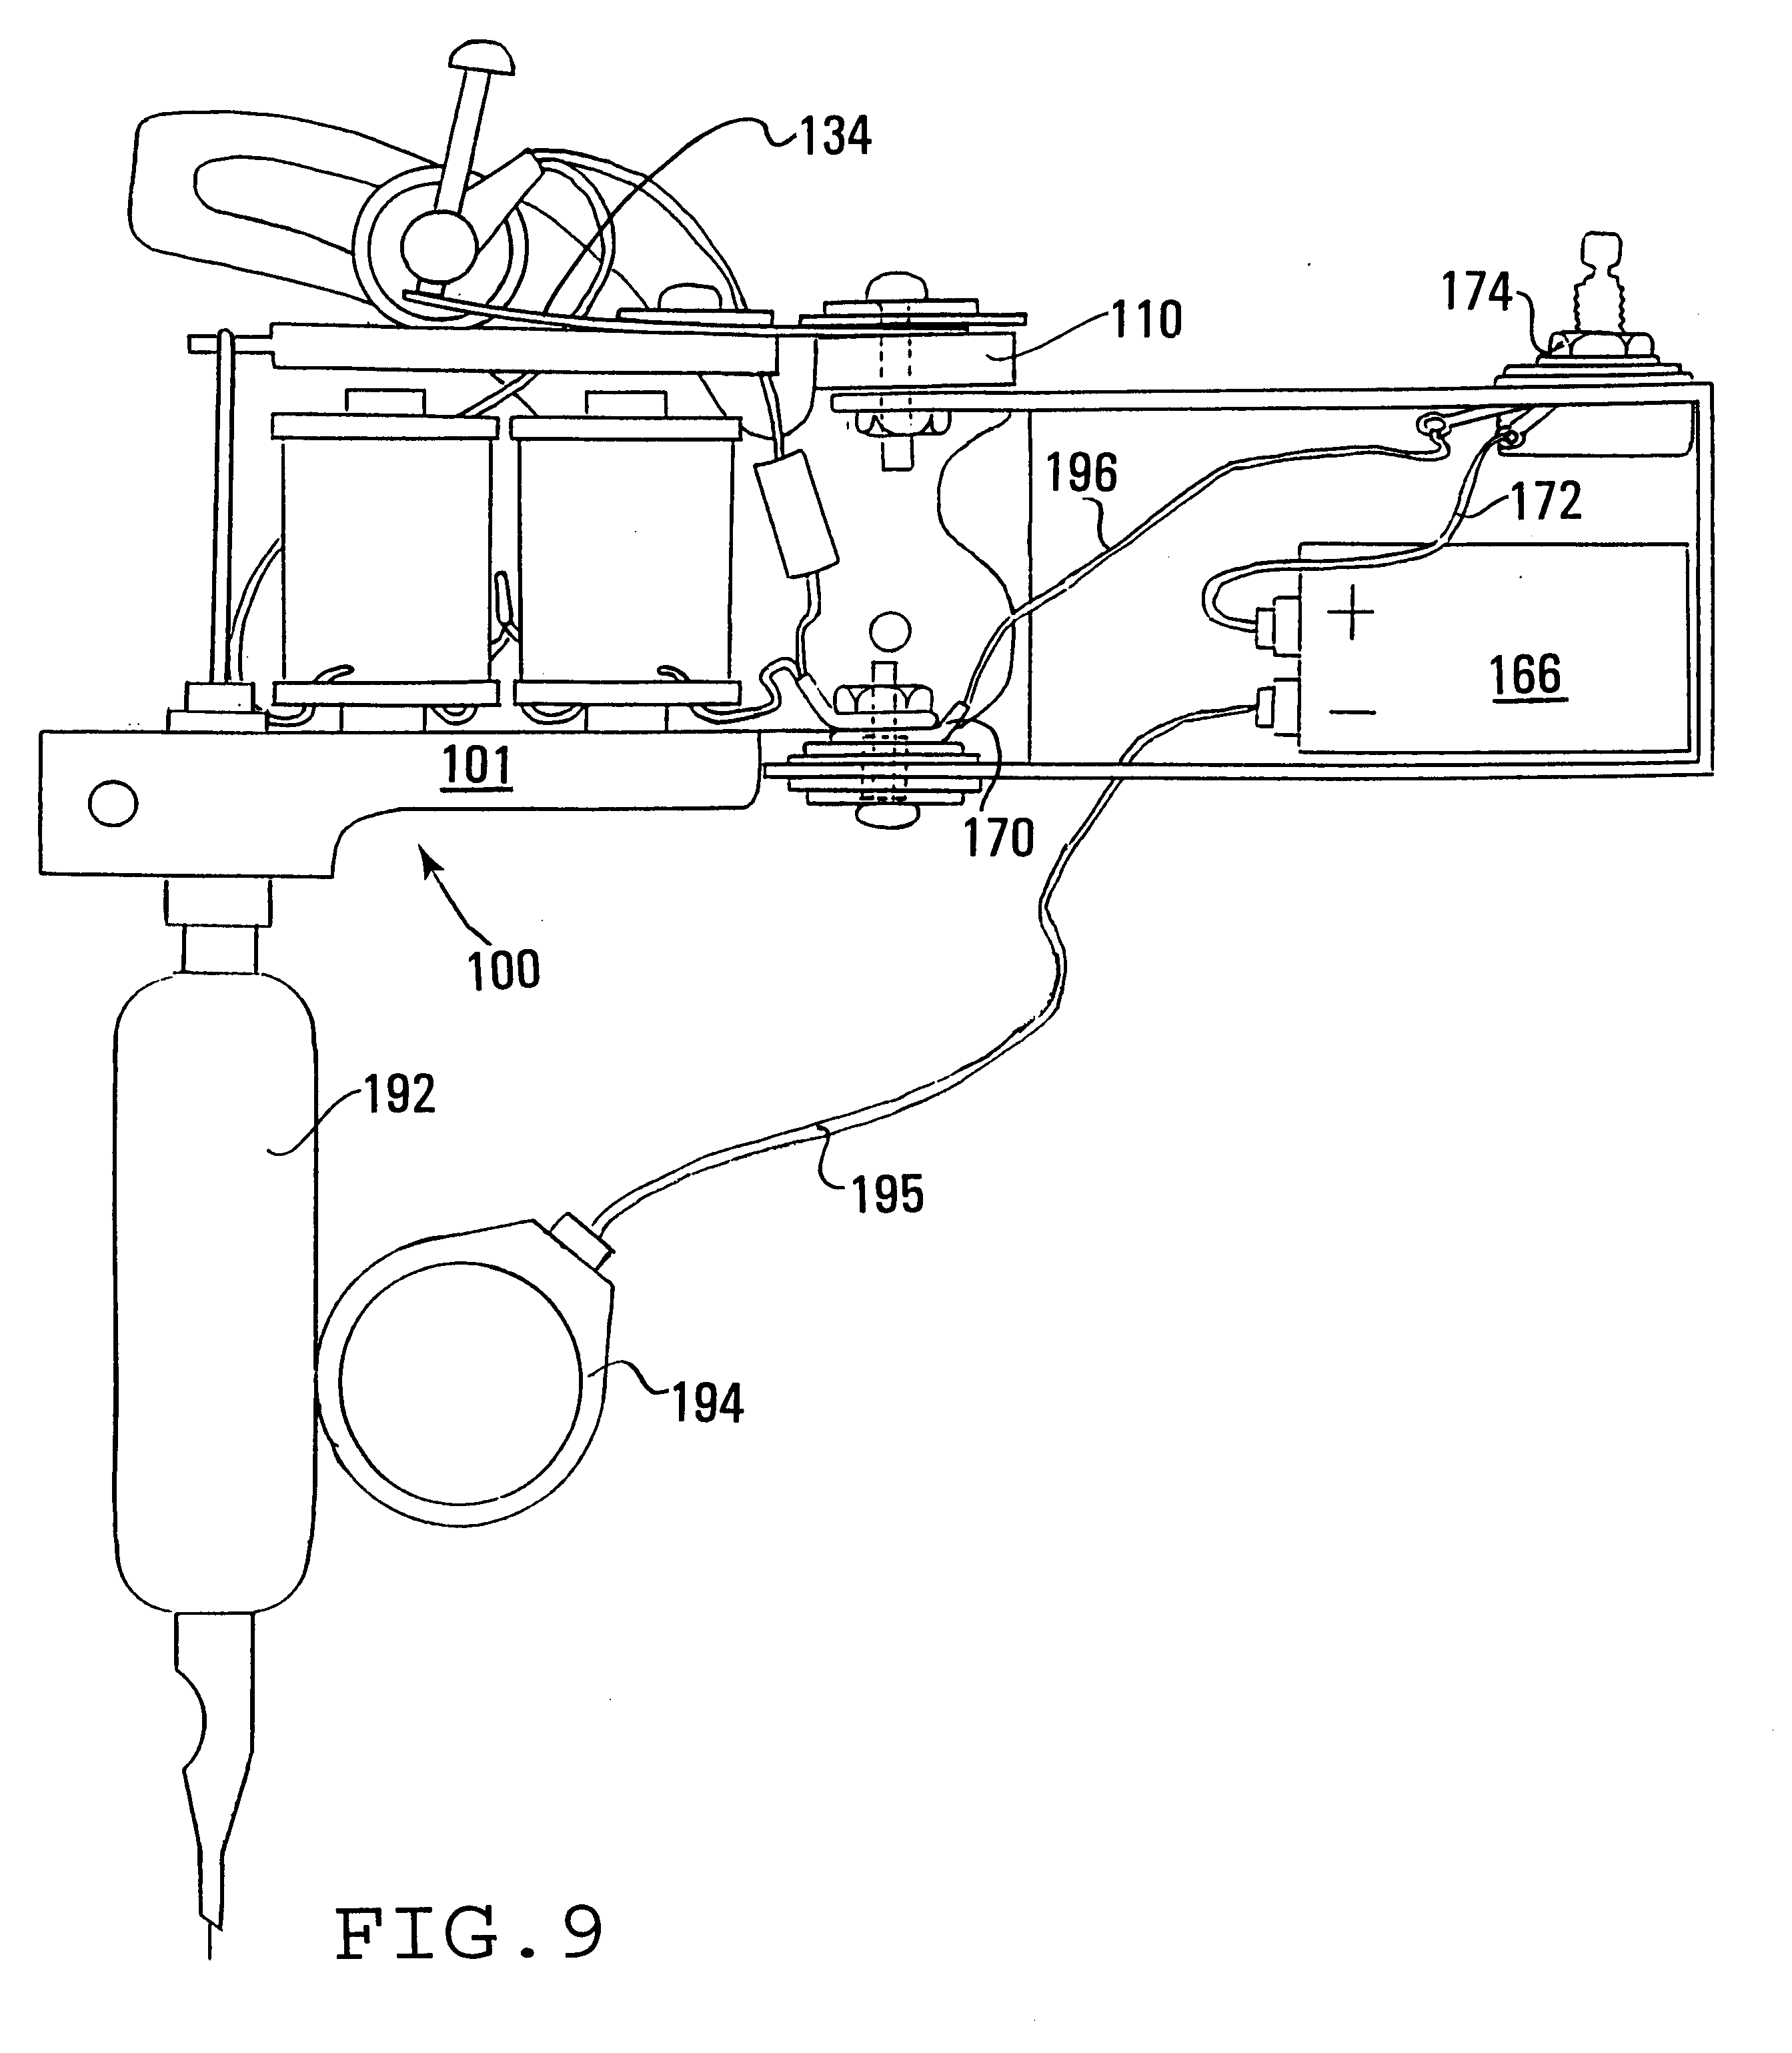 tattoo machine wiring diagram diagram patent us6550356 tattoo technology google patents patent drawing patent drawing wiring diagram for tattoo machine